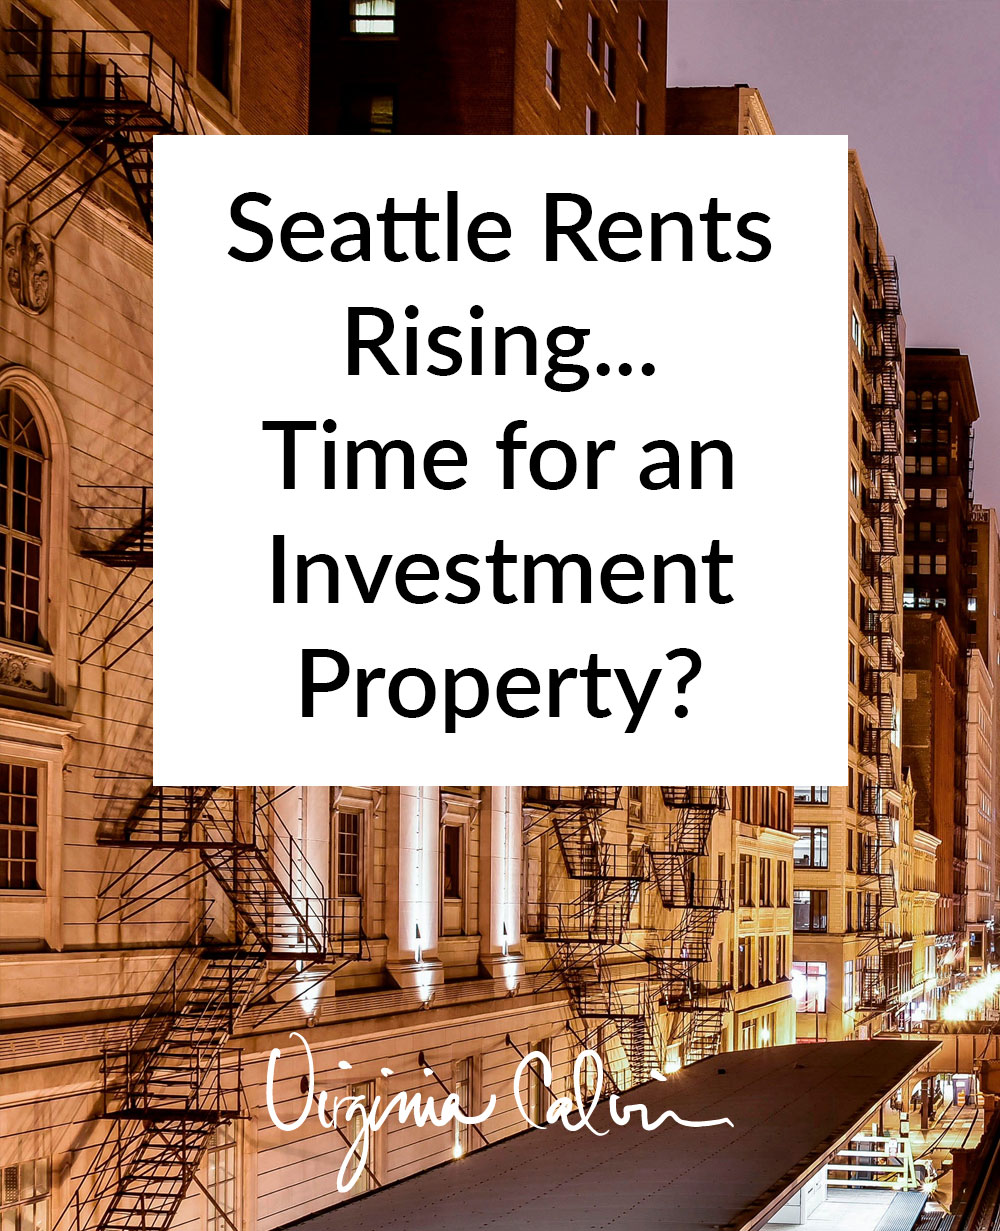 Seattle Rents Rising - Time for an Investment Property? | Virginia Calvin | Seattle Real Estate